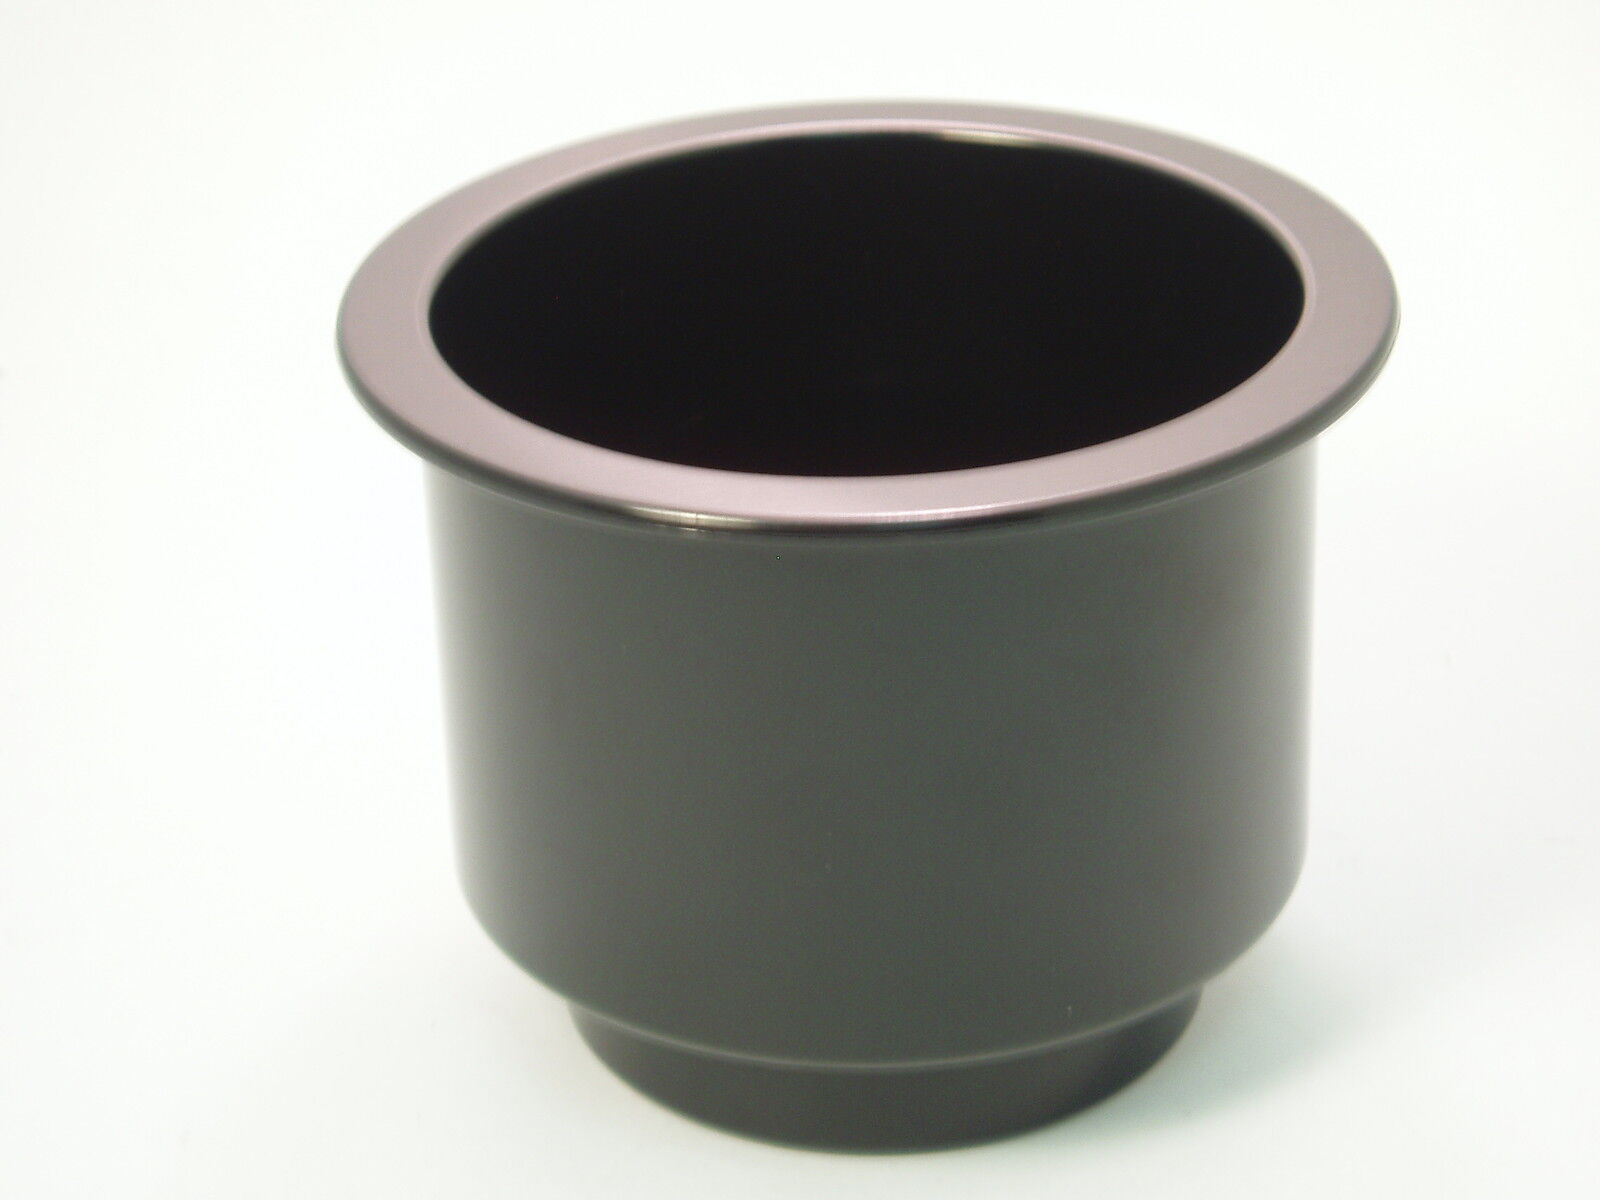 Plastic Cup Holder Boat RV Sofa or Poker Table Insert  : Plastic Cup Holder Boat RV Sofa or Poker 57 from picclick.com size 1600 x 1200 jpeg 85kB